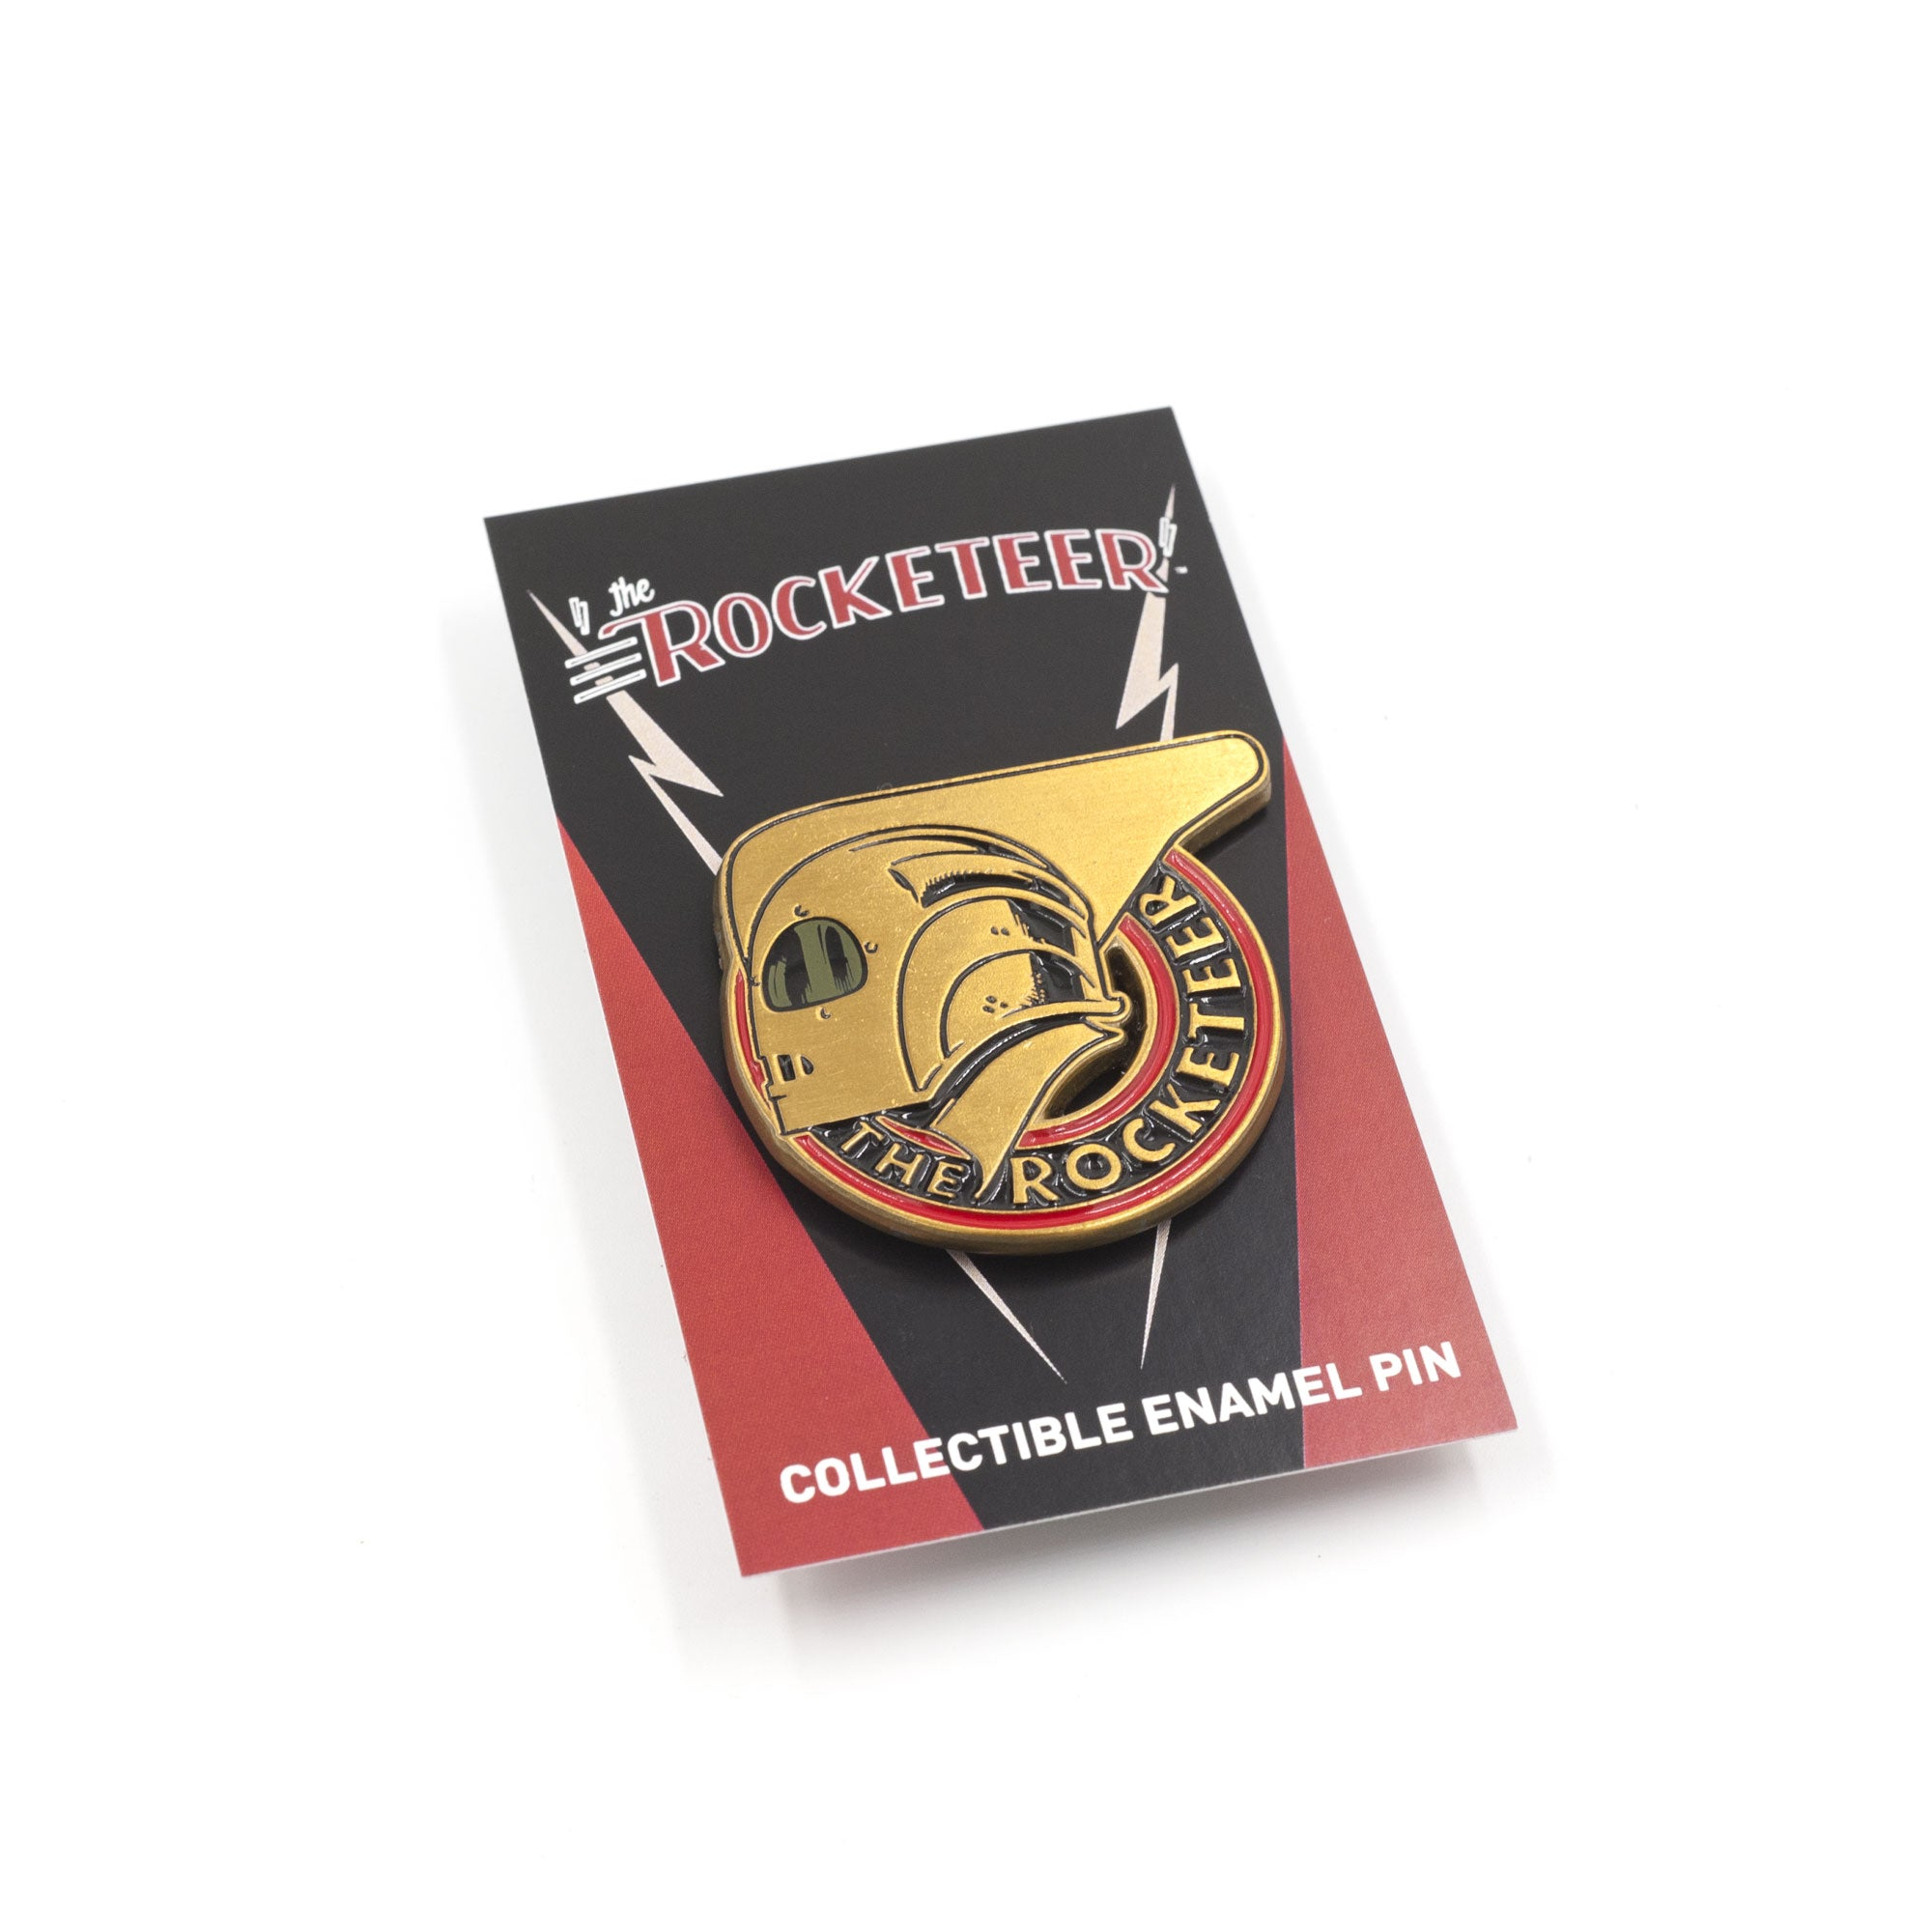 The Rocketeer Badge Pin